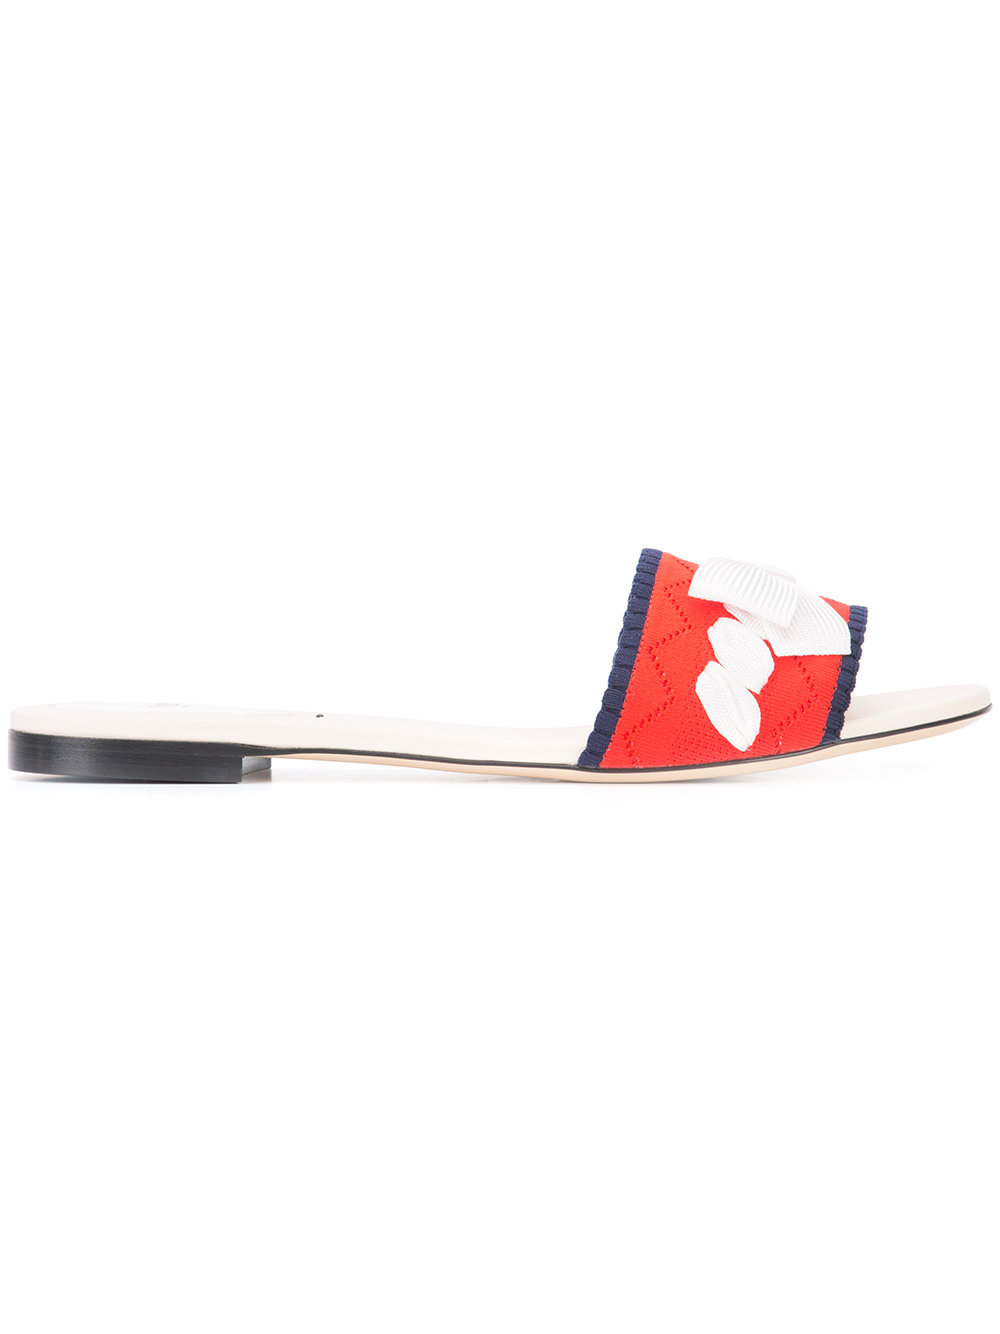 FENDI - bow-embroidered sandals  $550